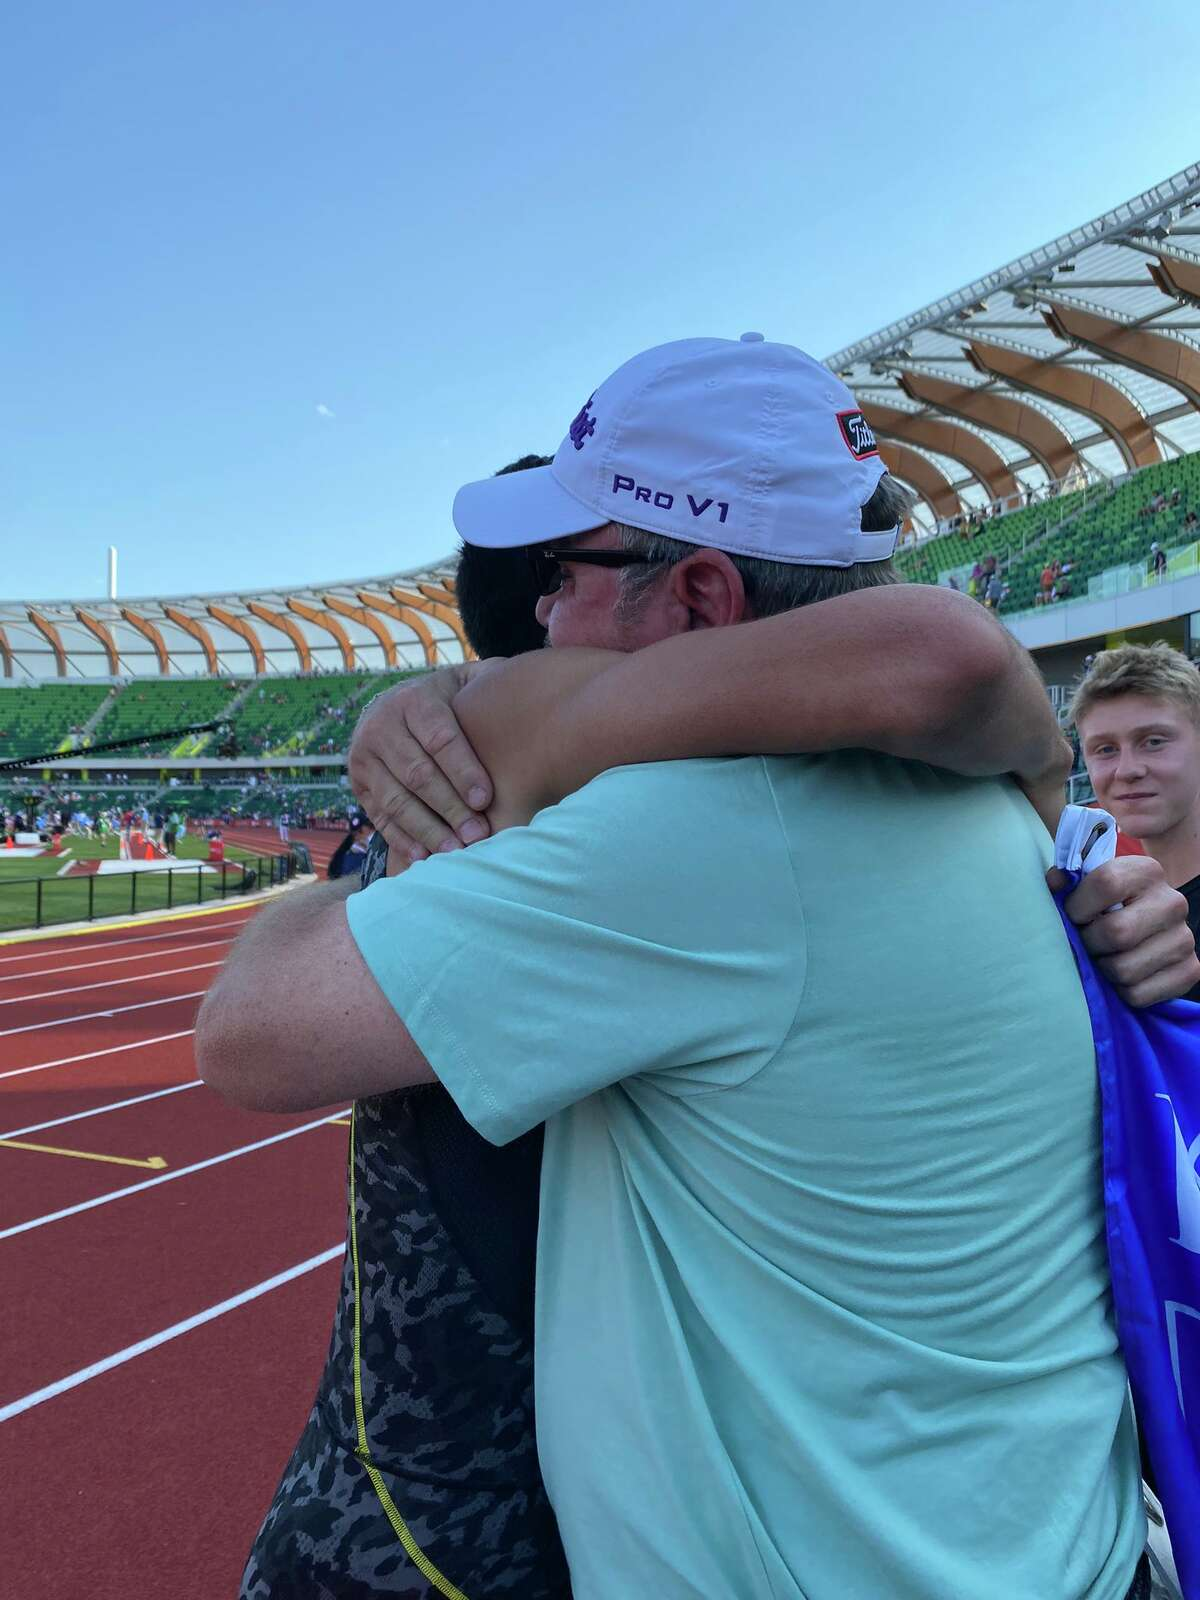 Bryce Hoppel, left, gives Jeff Streuna hug after he qualified for the Tokyo Olympics with a third-place finish in the 800-meter final at the U.S. Olympic Team Trials, June 21 in Eugene Oregon. Streunwas Hoppel's track & field coach at Midland High.